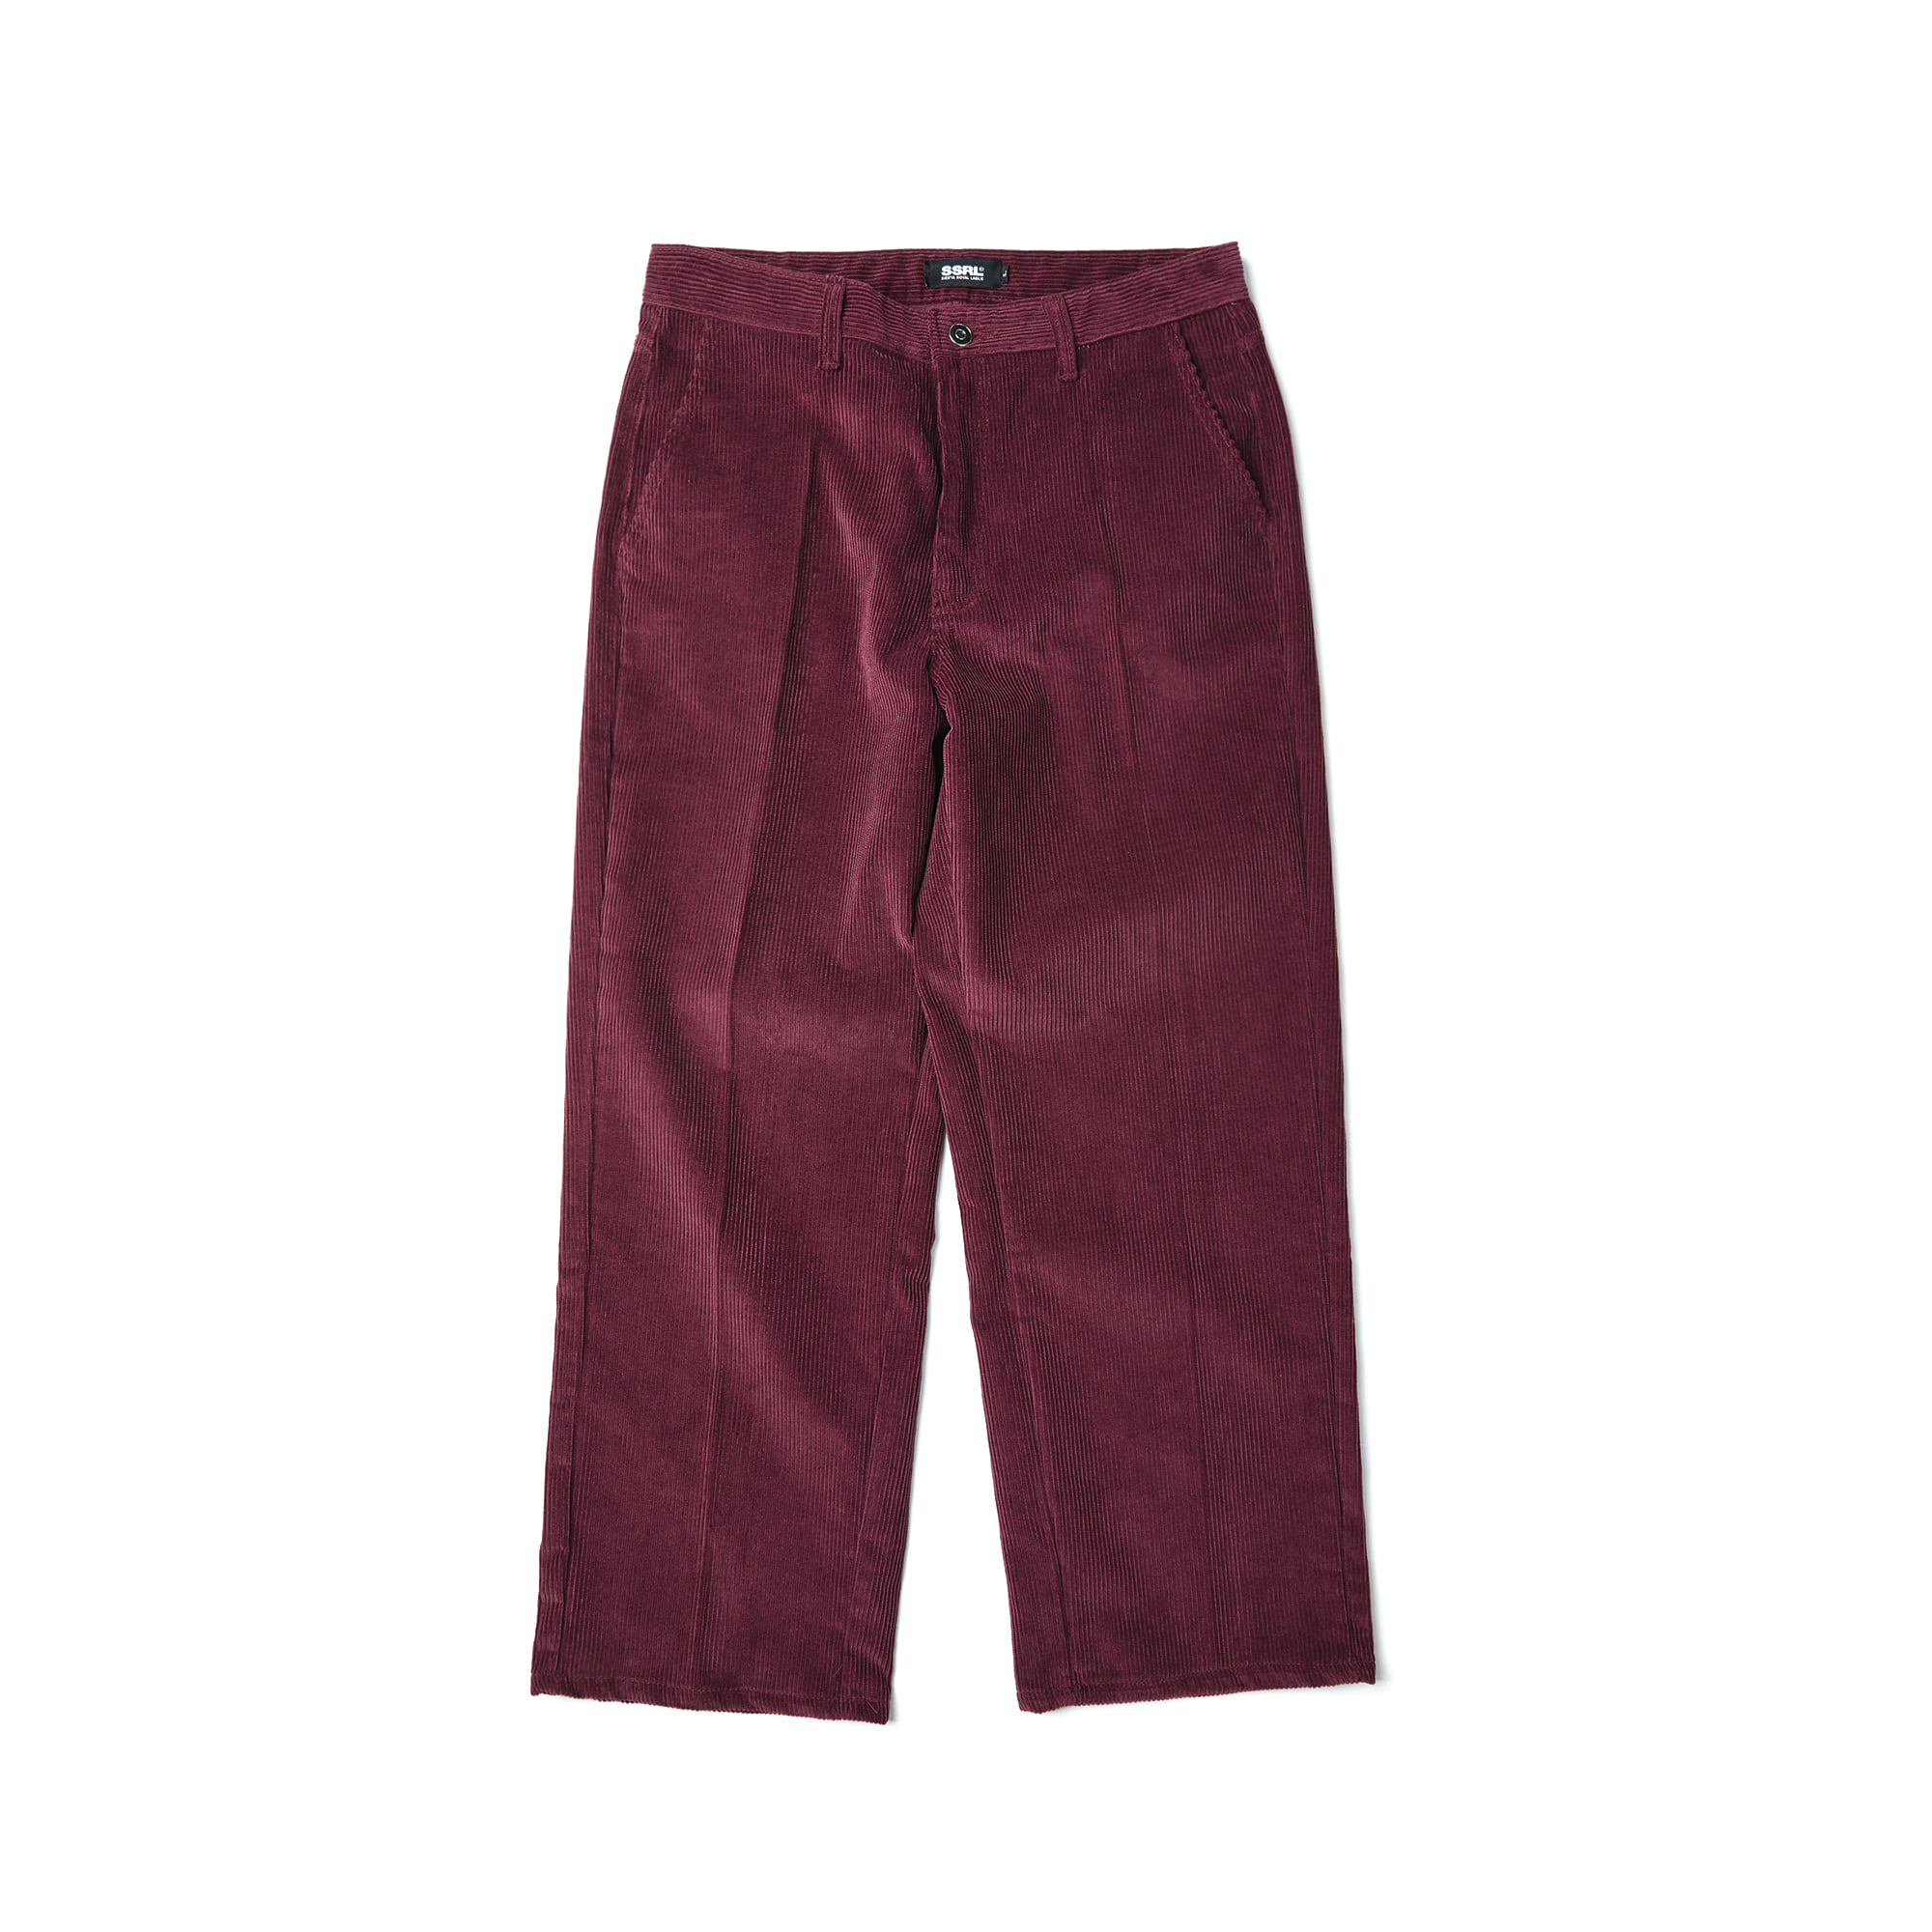 corduroy wide pants / wine